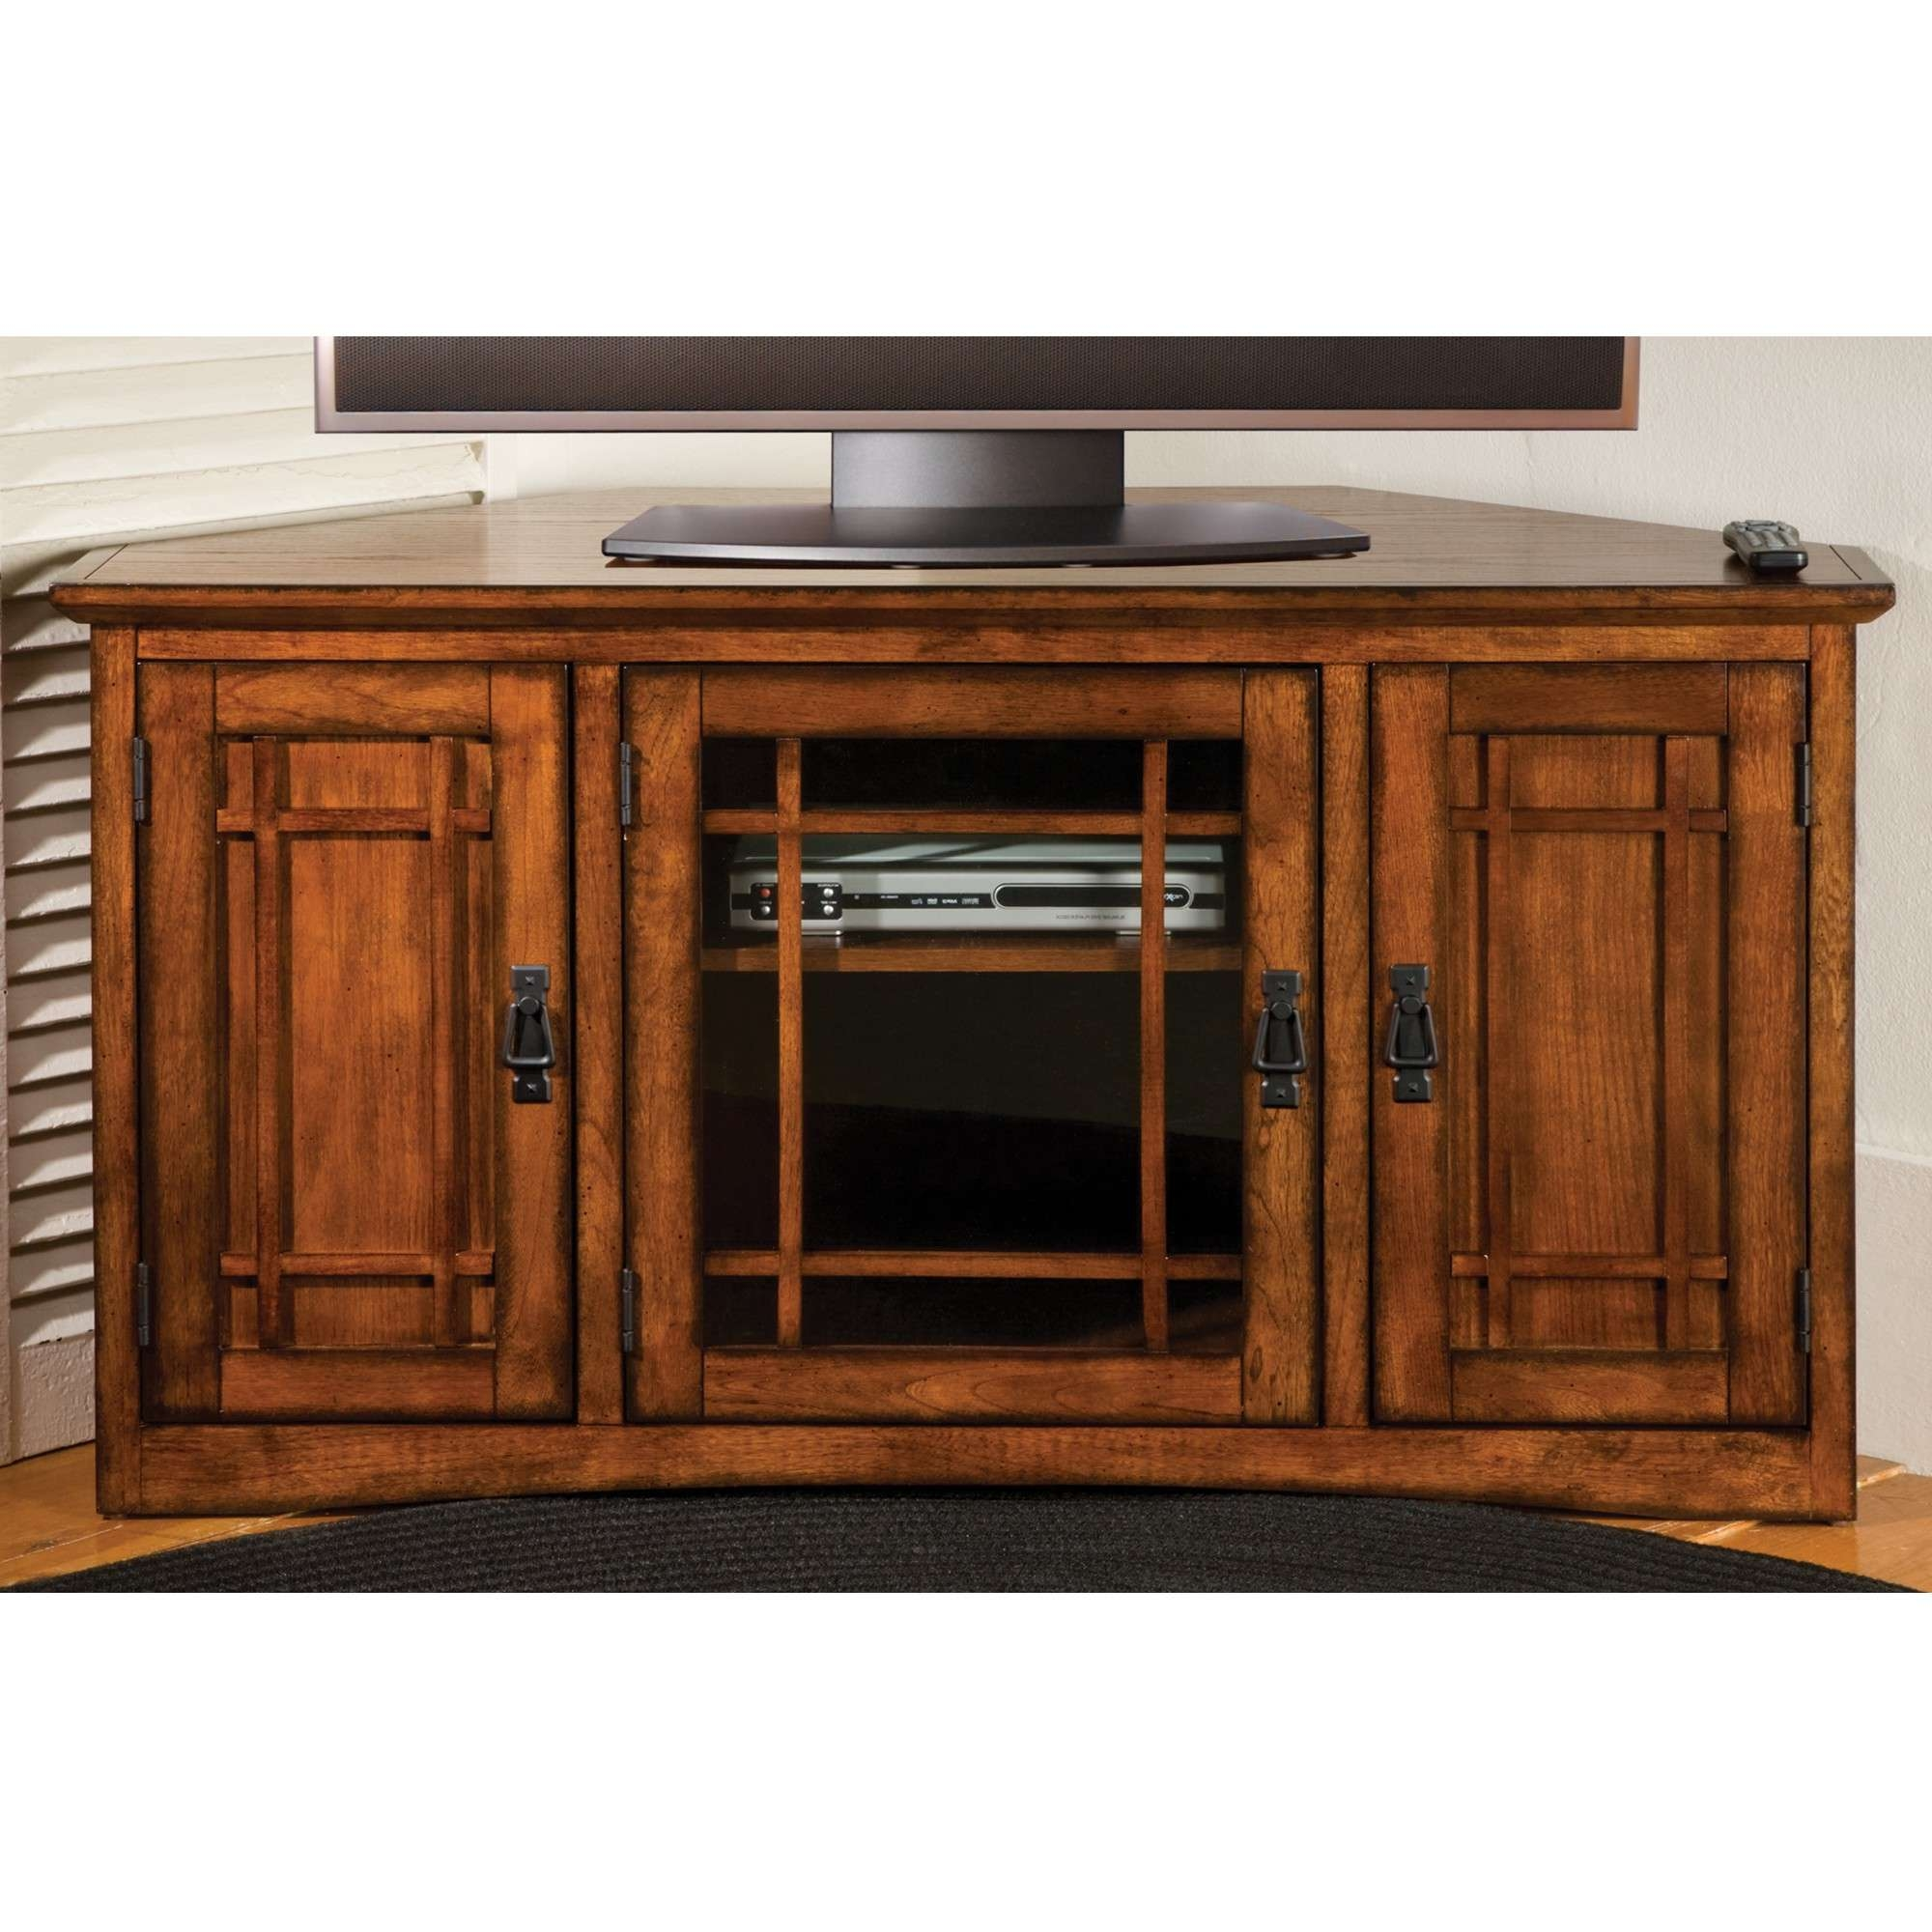 Mission Corner Tv Cabinet | Sturbridge Yankee Workshop Throughout Oak Tv Cabinets With Doors (View 20 of 20)